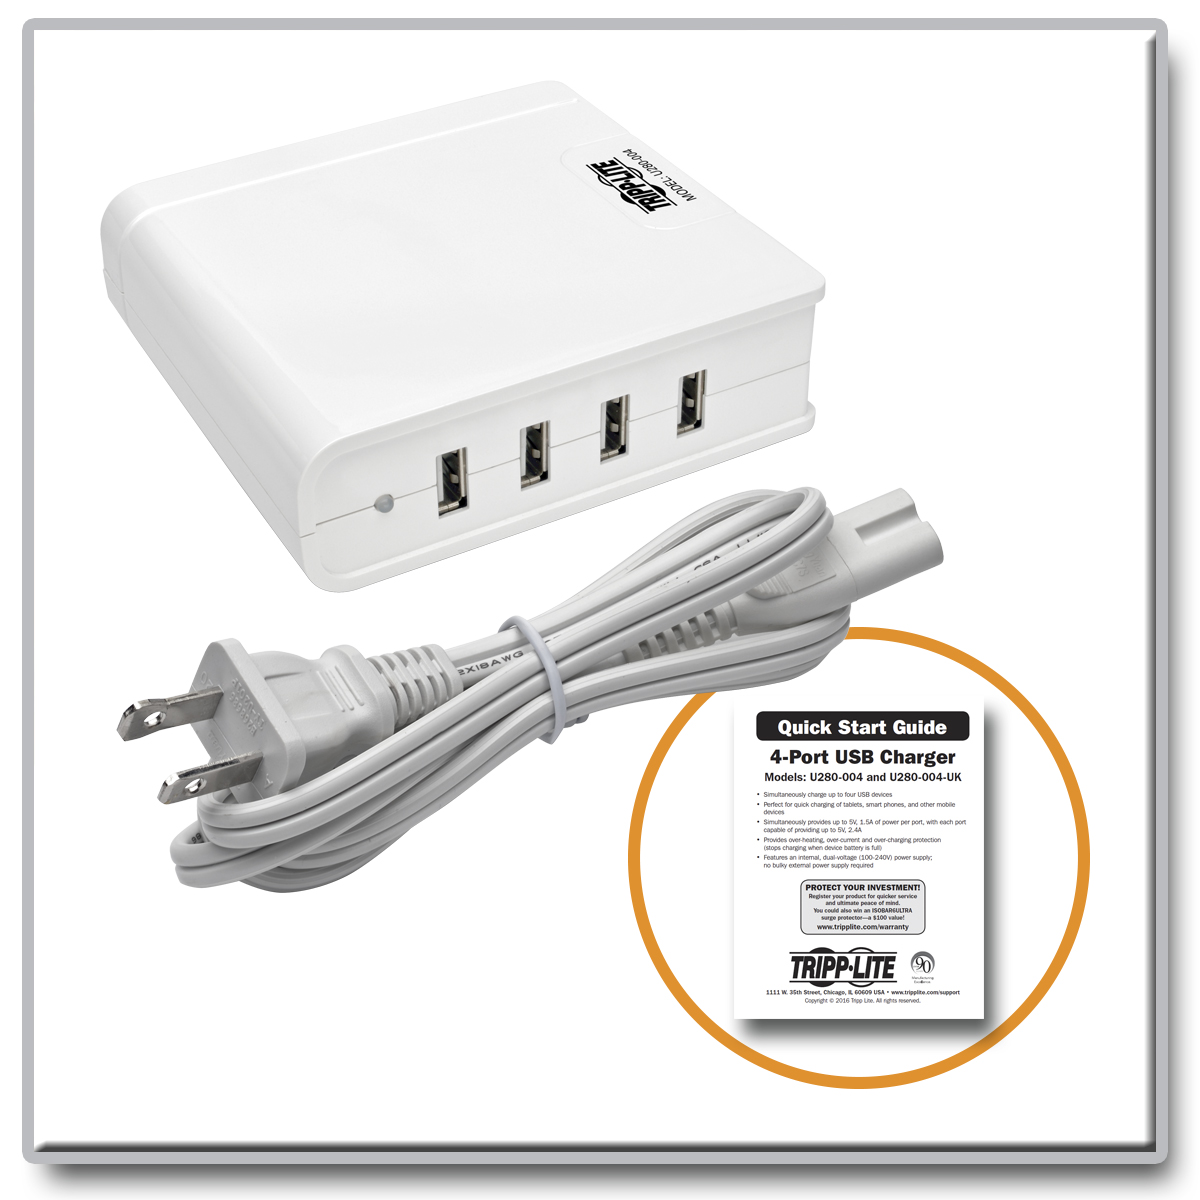 Tripp Lite 4 Port Usb Charging Station Hub 5v 6a 30w Tablet Kabel Data Samsung Galaxy Tab 1 2 Original 100 Charge Up To Electronic Devices At The Same Time Via Connection